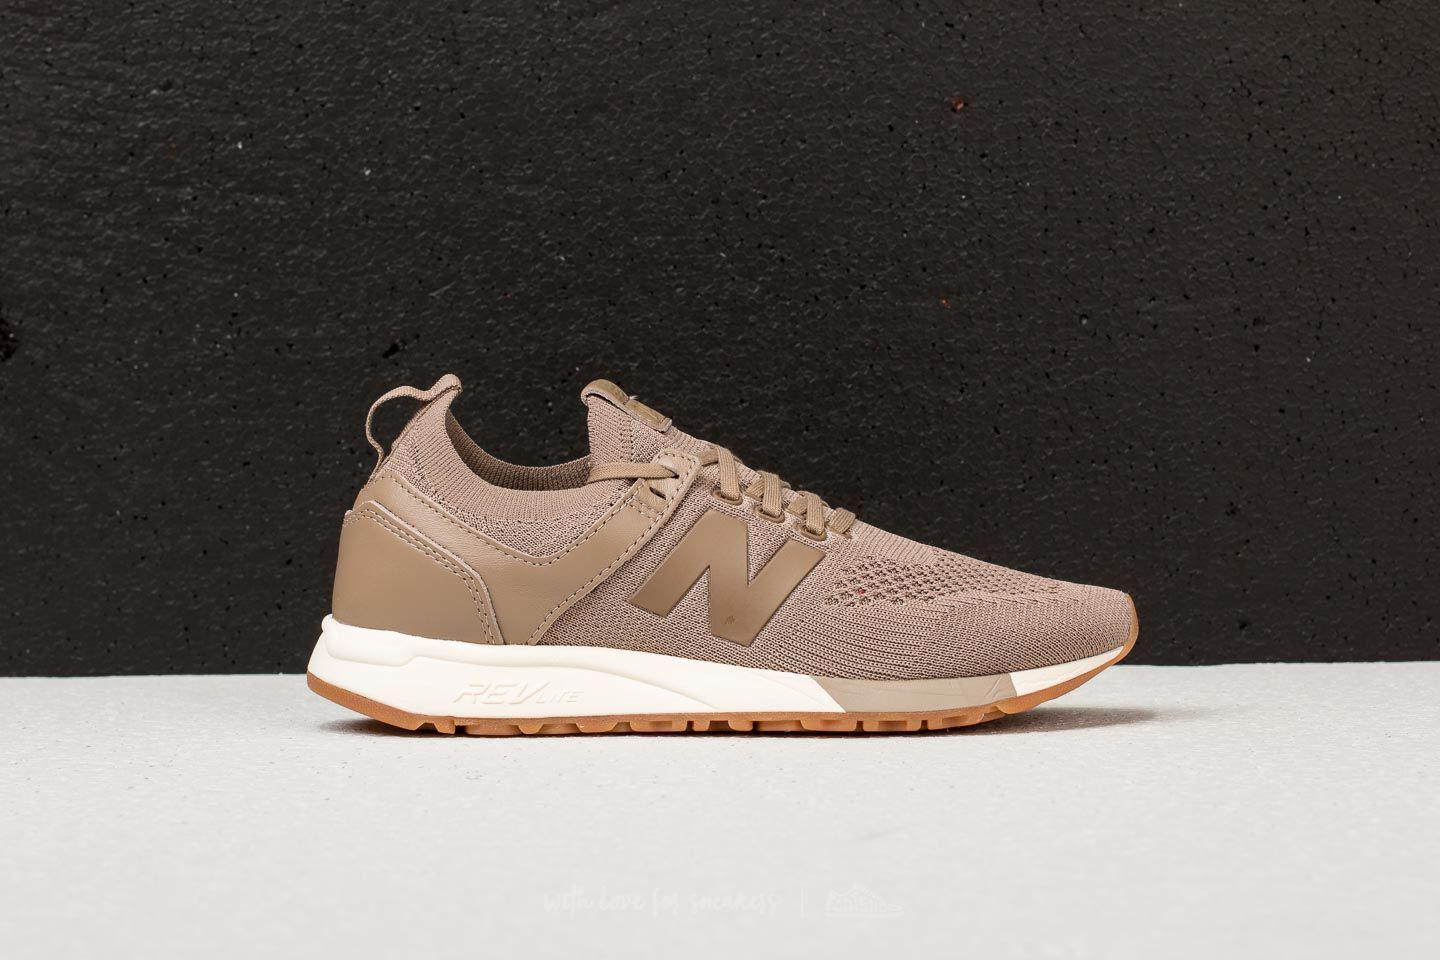 new balance 247 taupe, OFF 73%,Buy!